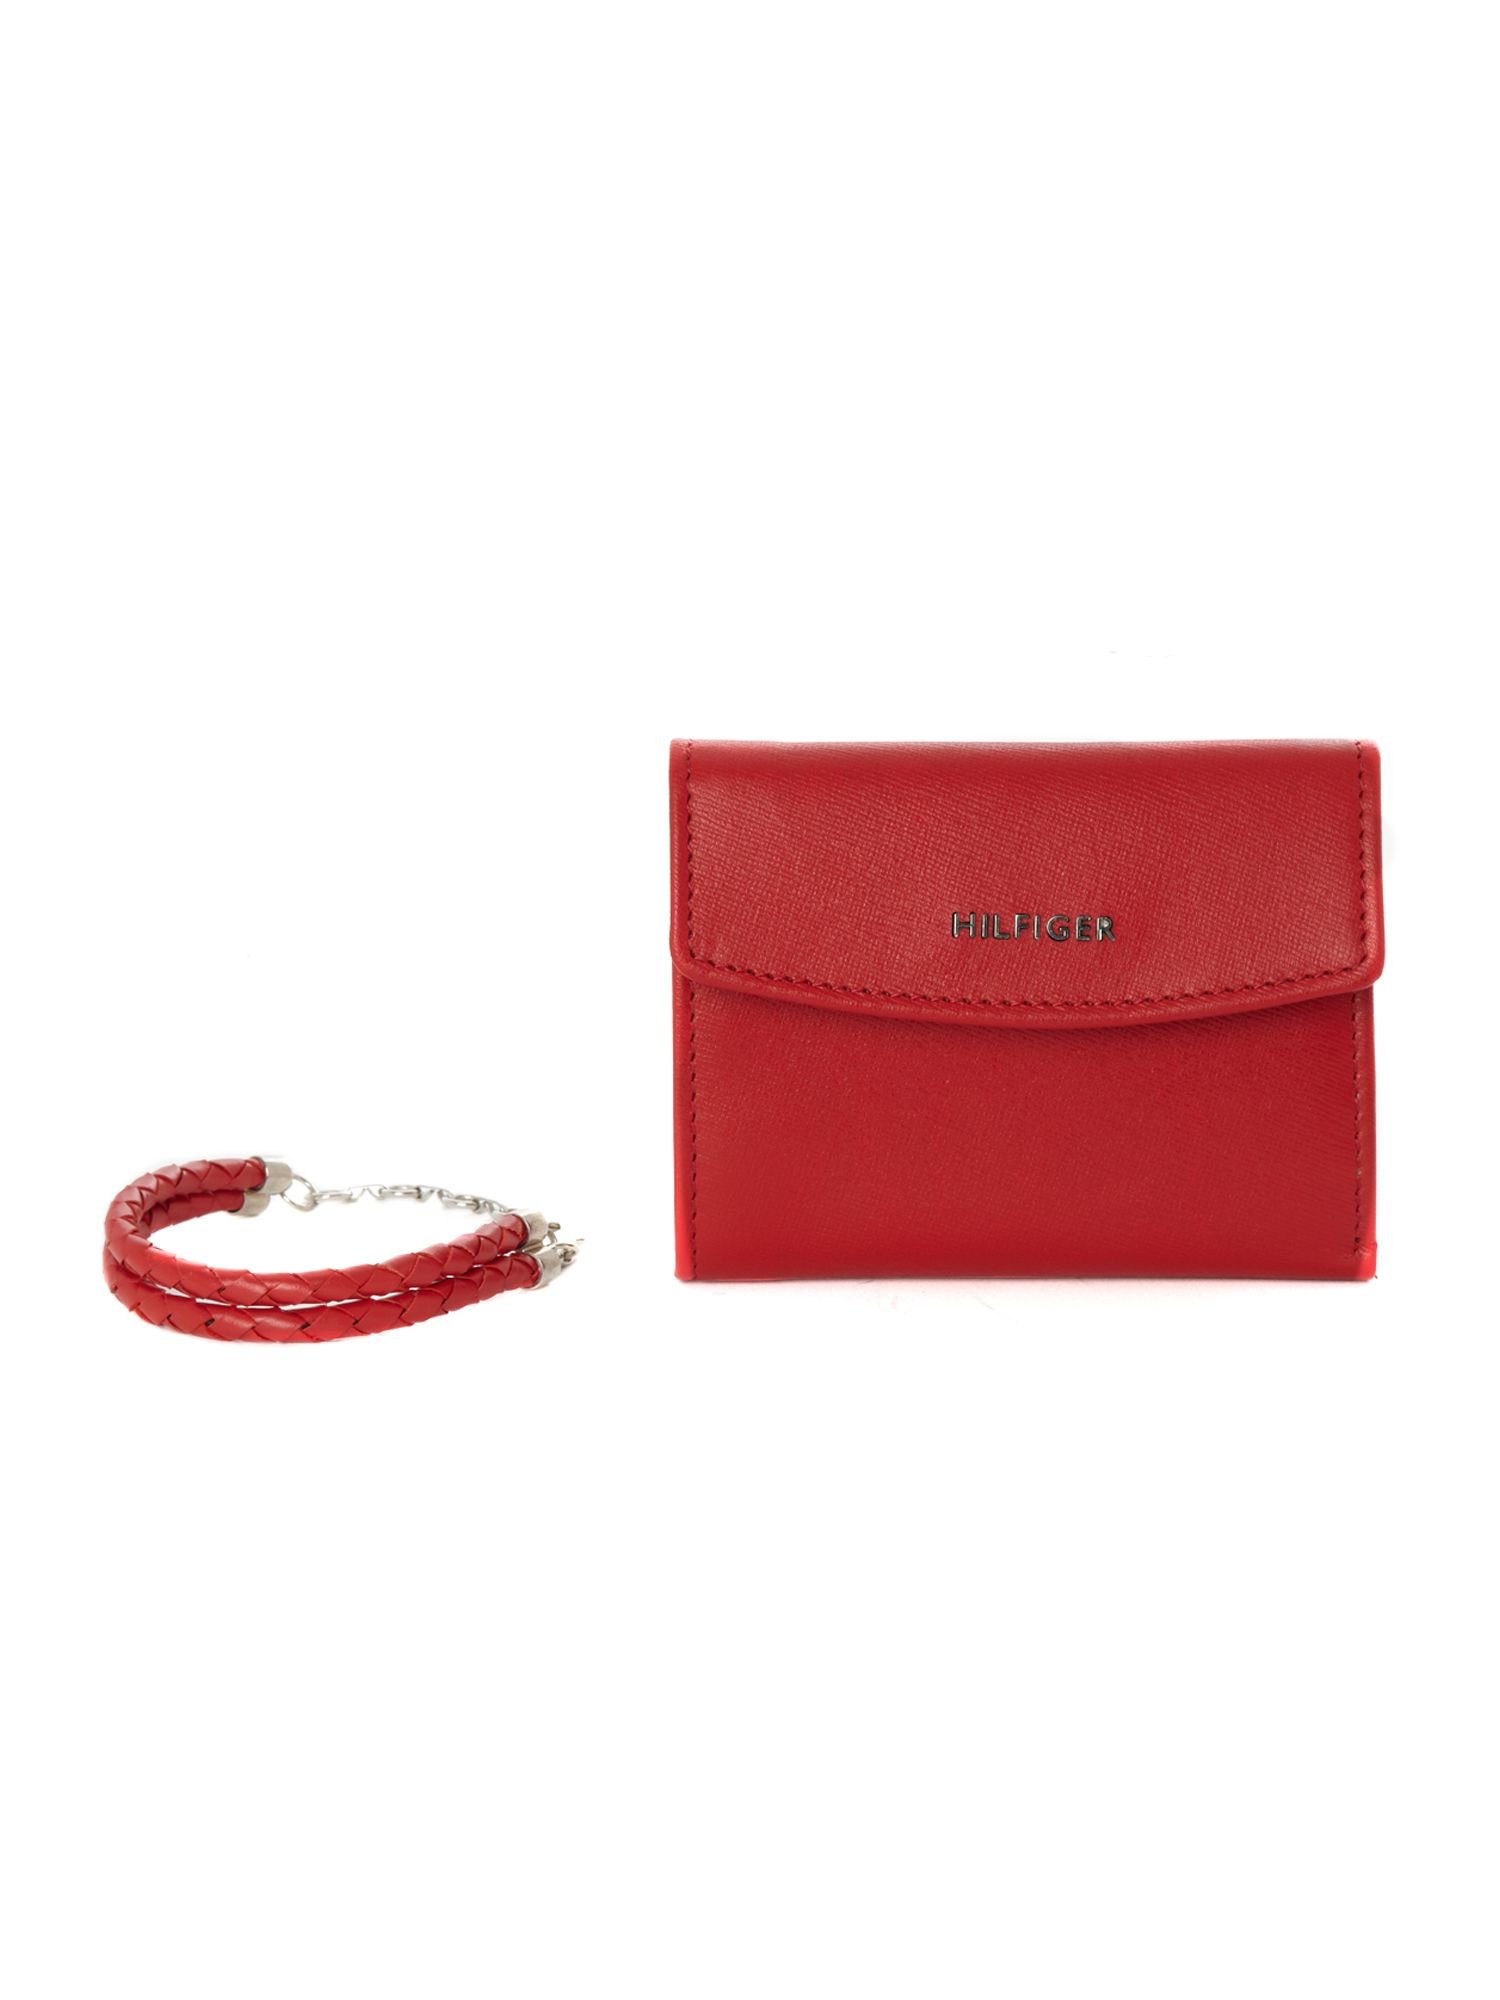 Stella purse and bracelet set